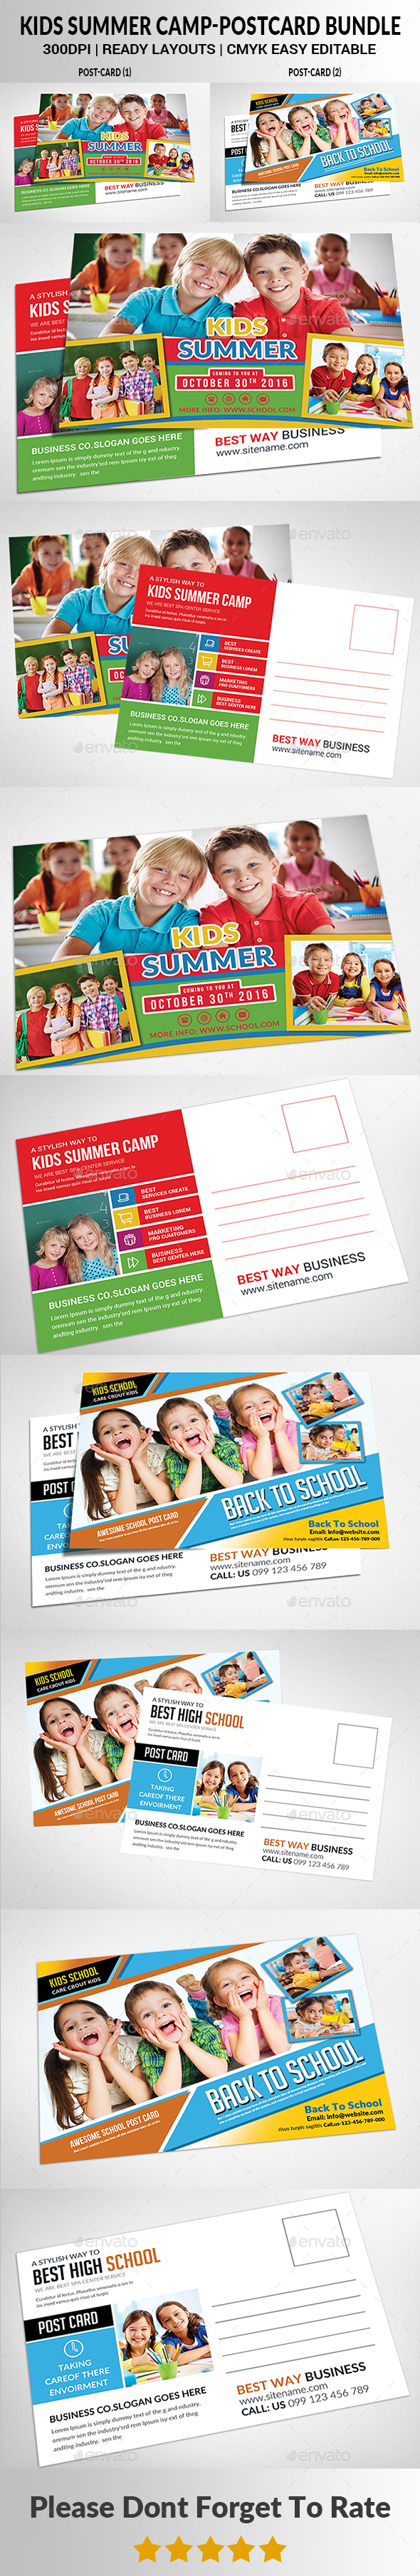 Kids Summer Camp Postcard Bundle - Cards & Invites Print Templates